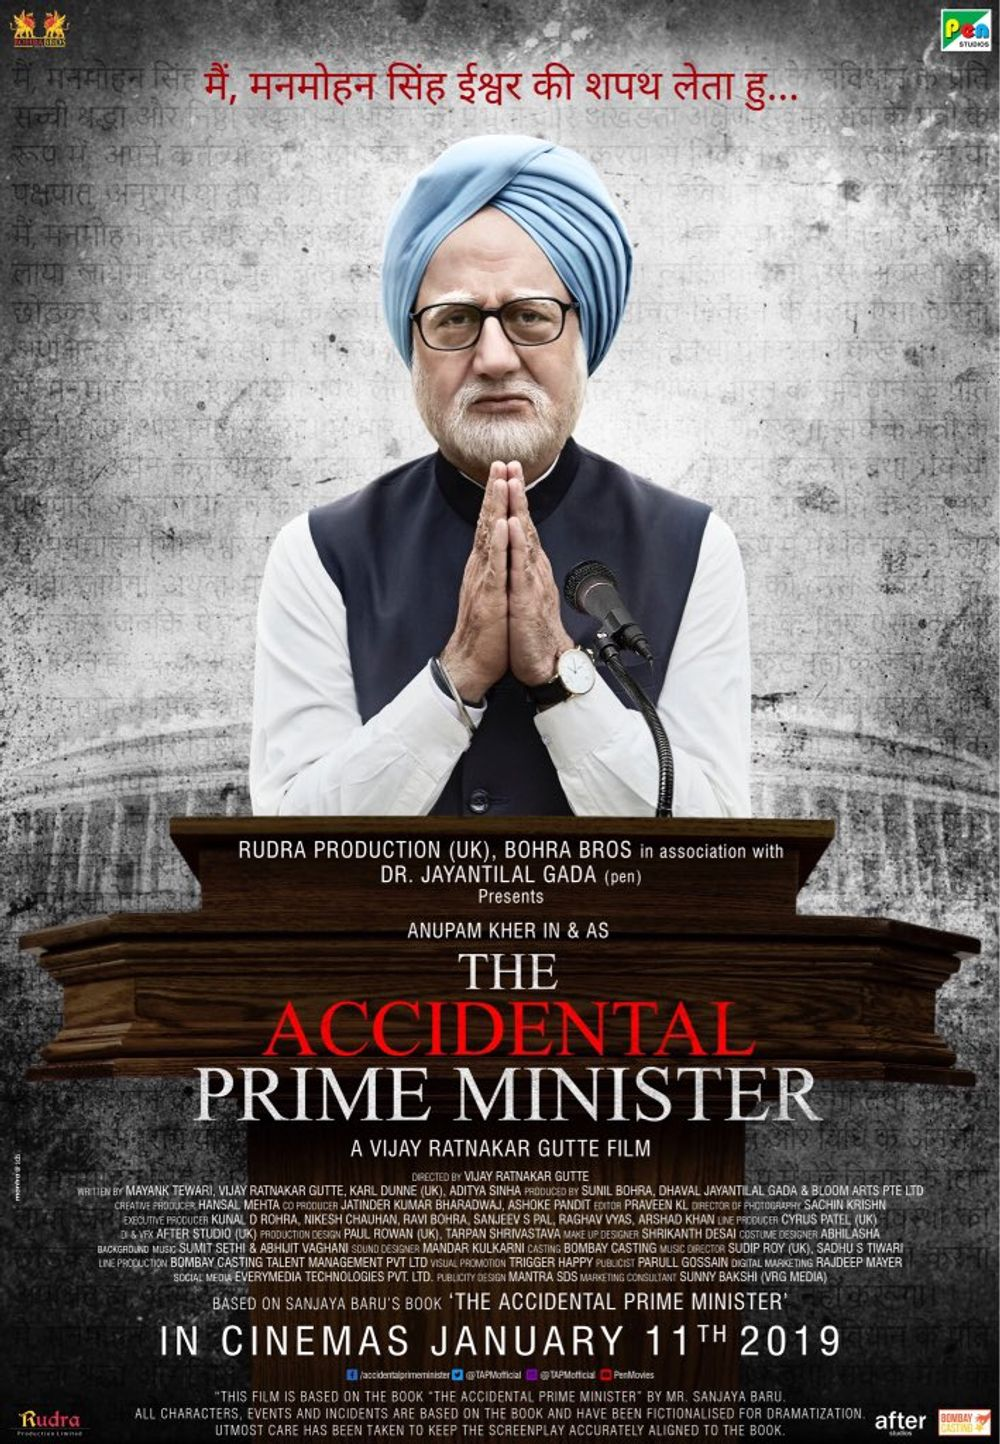 2-The Accidental Prime Minister